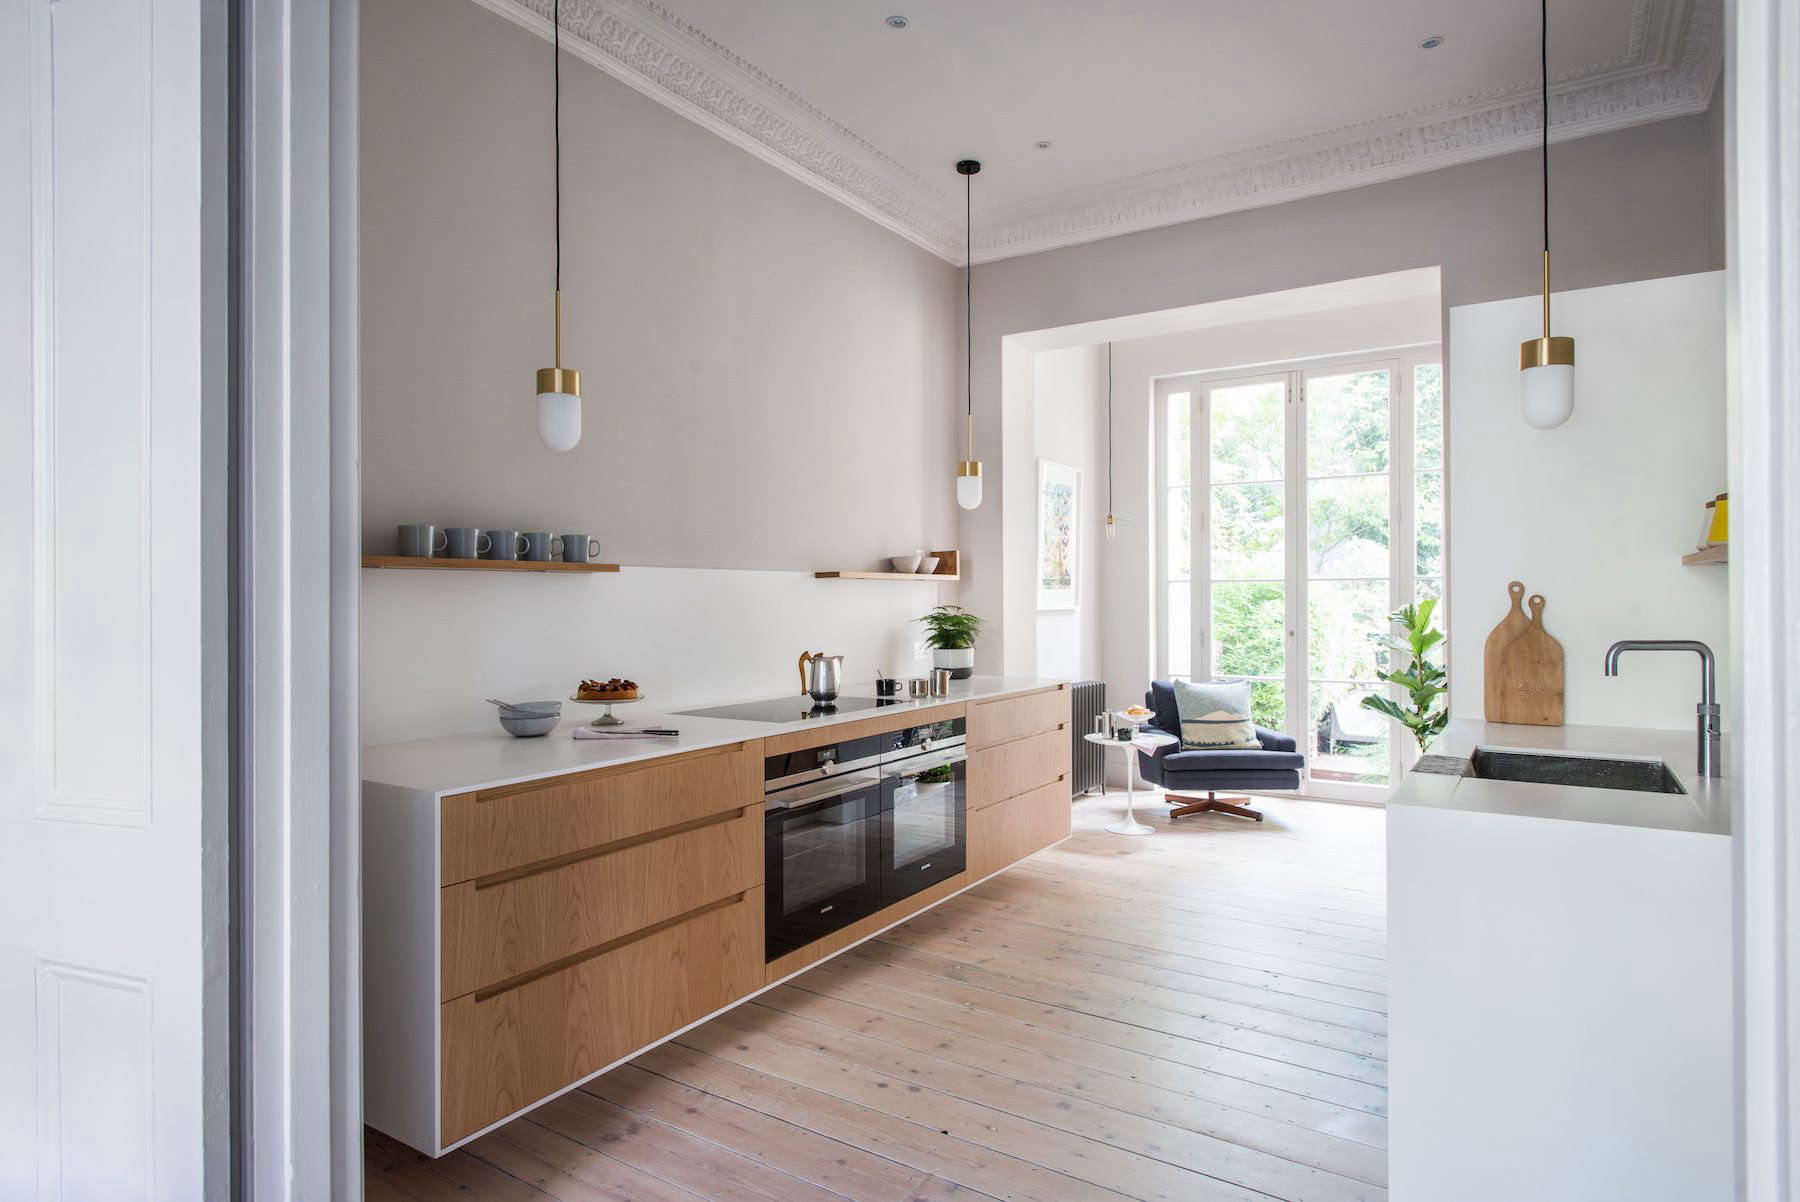 Kitchen Of The Week A Minimalist Galley Kitchen In A Georgian London Townhouse Remodelista